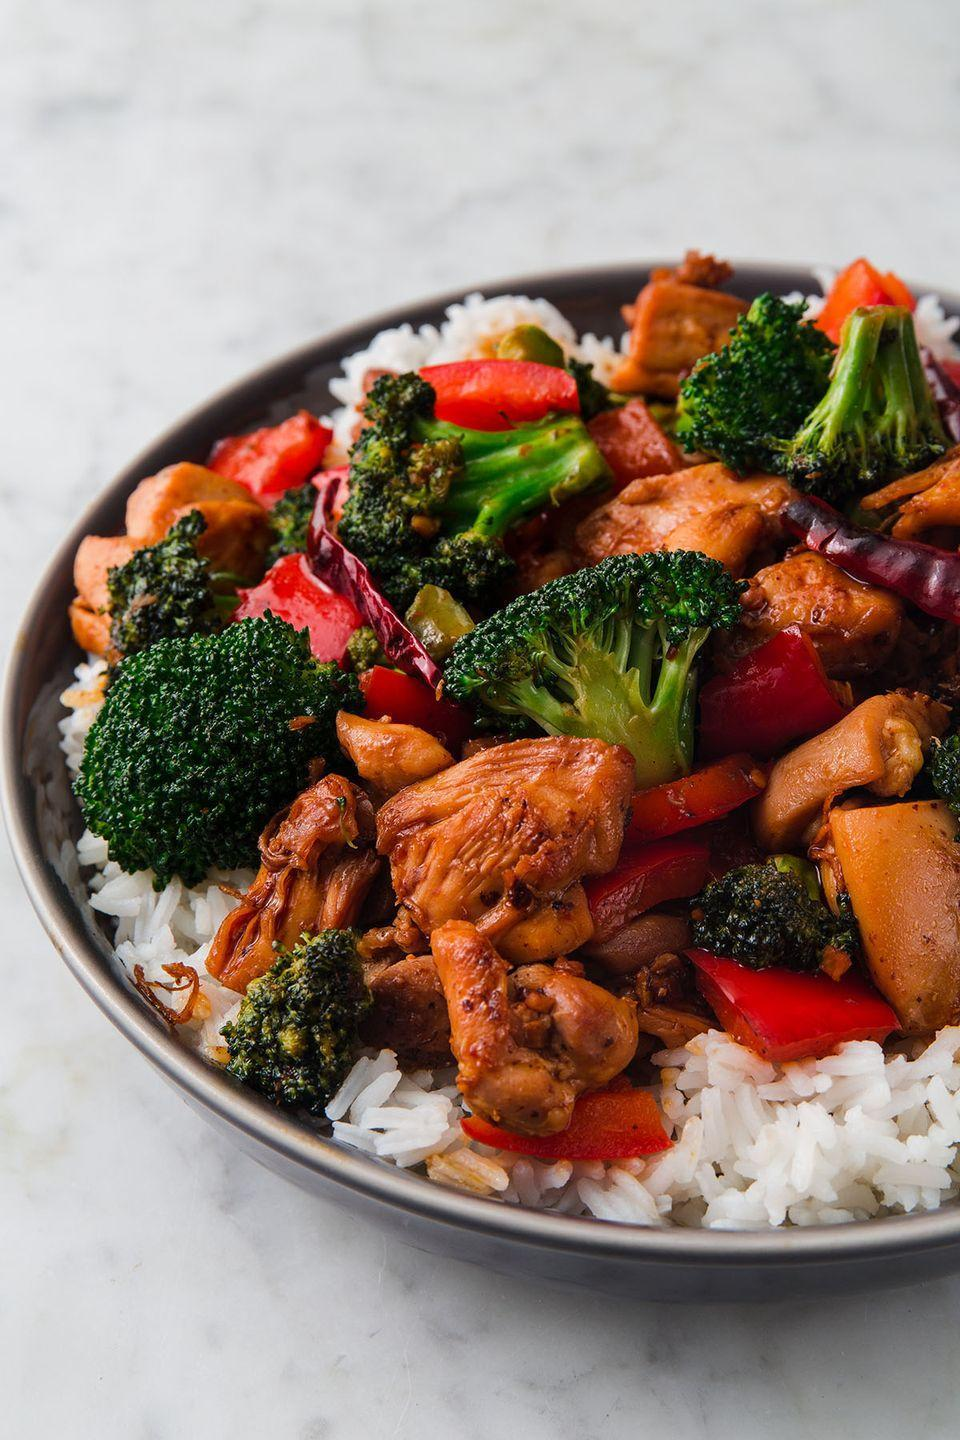 """<p>Chick with a kick. </p><p>Get the recipe from <a href=""""https://www.delish.com/cooking/recipe-ideas/a22108351/hunan-chicken-recipe/"""" rel=""""nofollow noopener"""" target=""""_blank"""" data-ylk=""""slk:Delish"""" class=""""link rapid-noclick-resp"""">Delish</a>. </p>"""